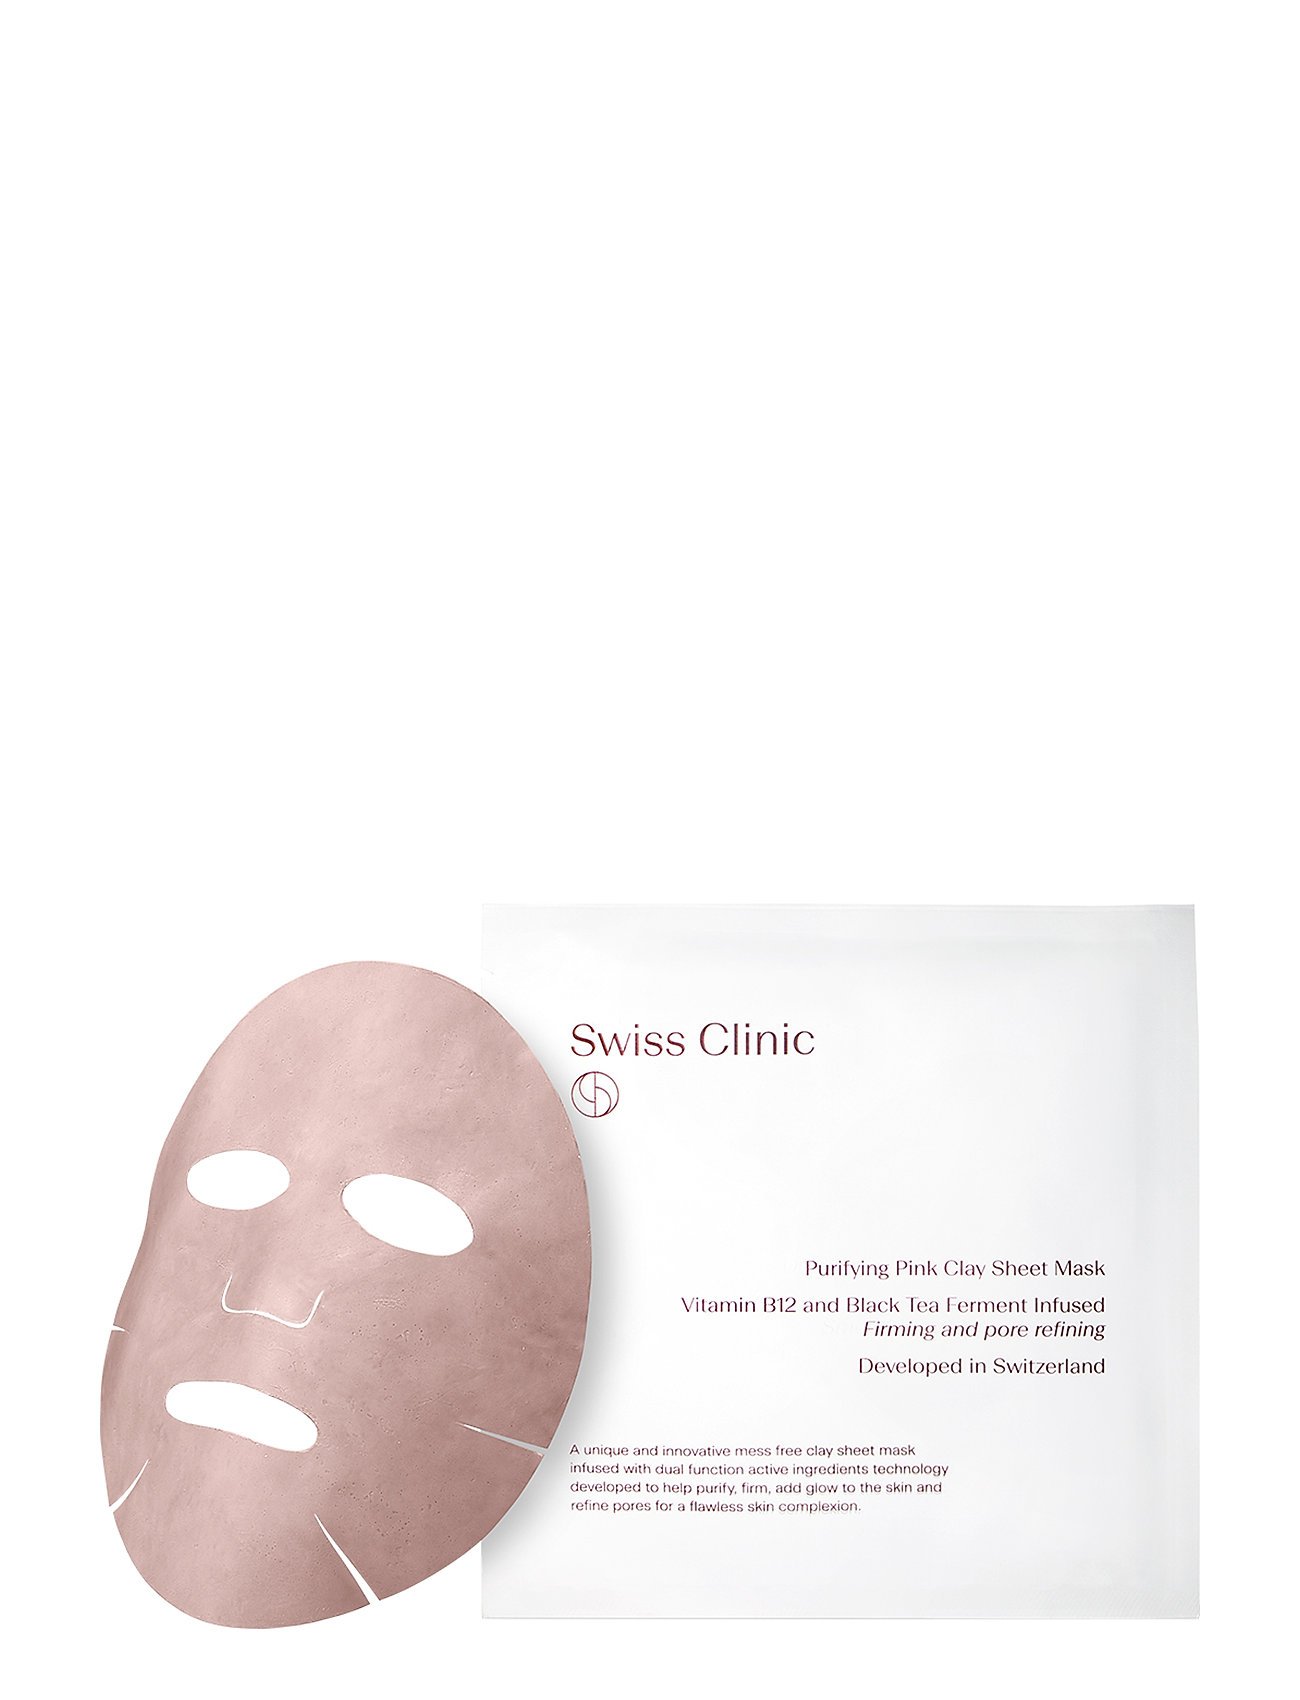 Image of Purifying Pink Clay Mask Hudpleje Ansigtspleje Nude Swiss Clinic (3333557893)